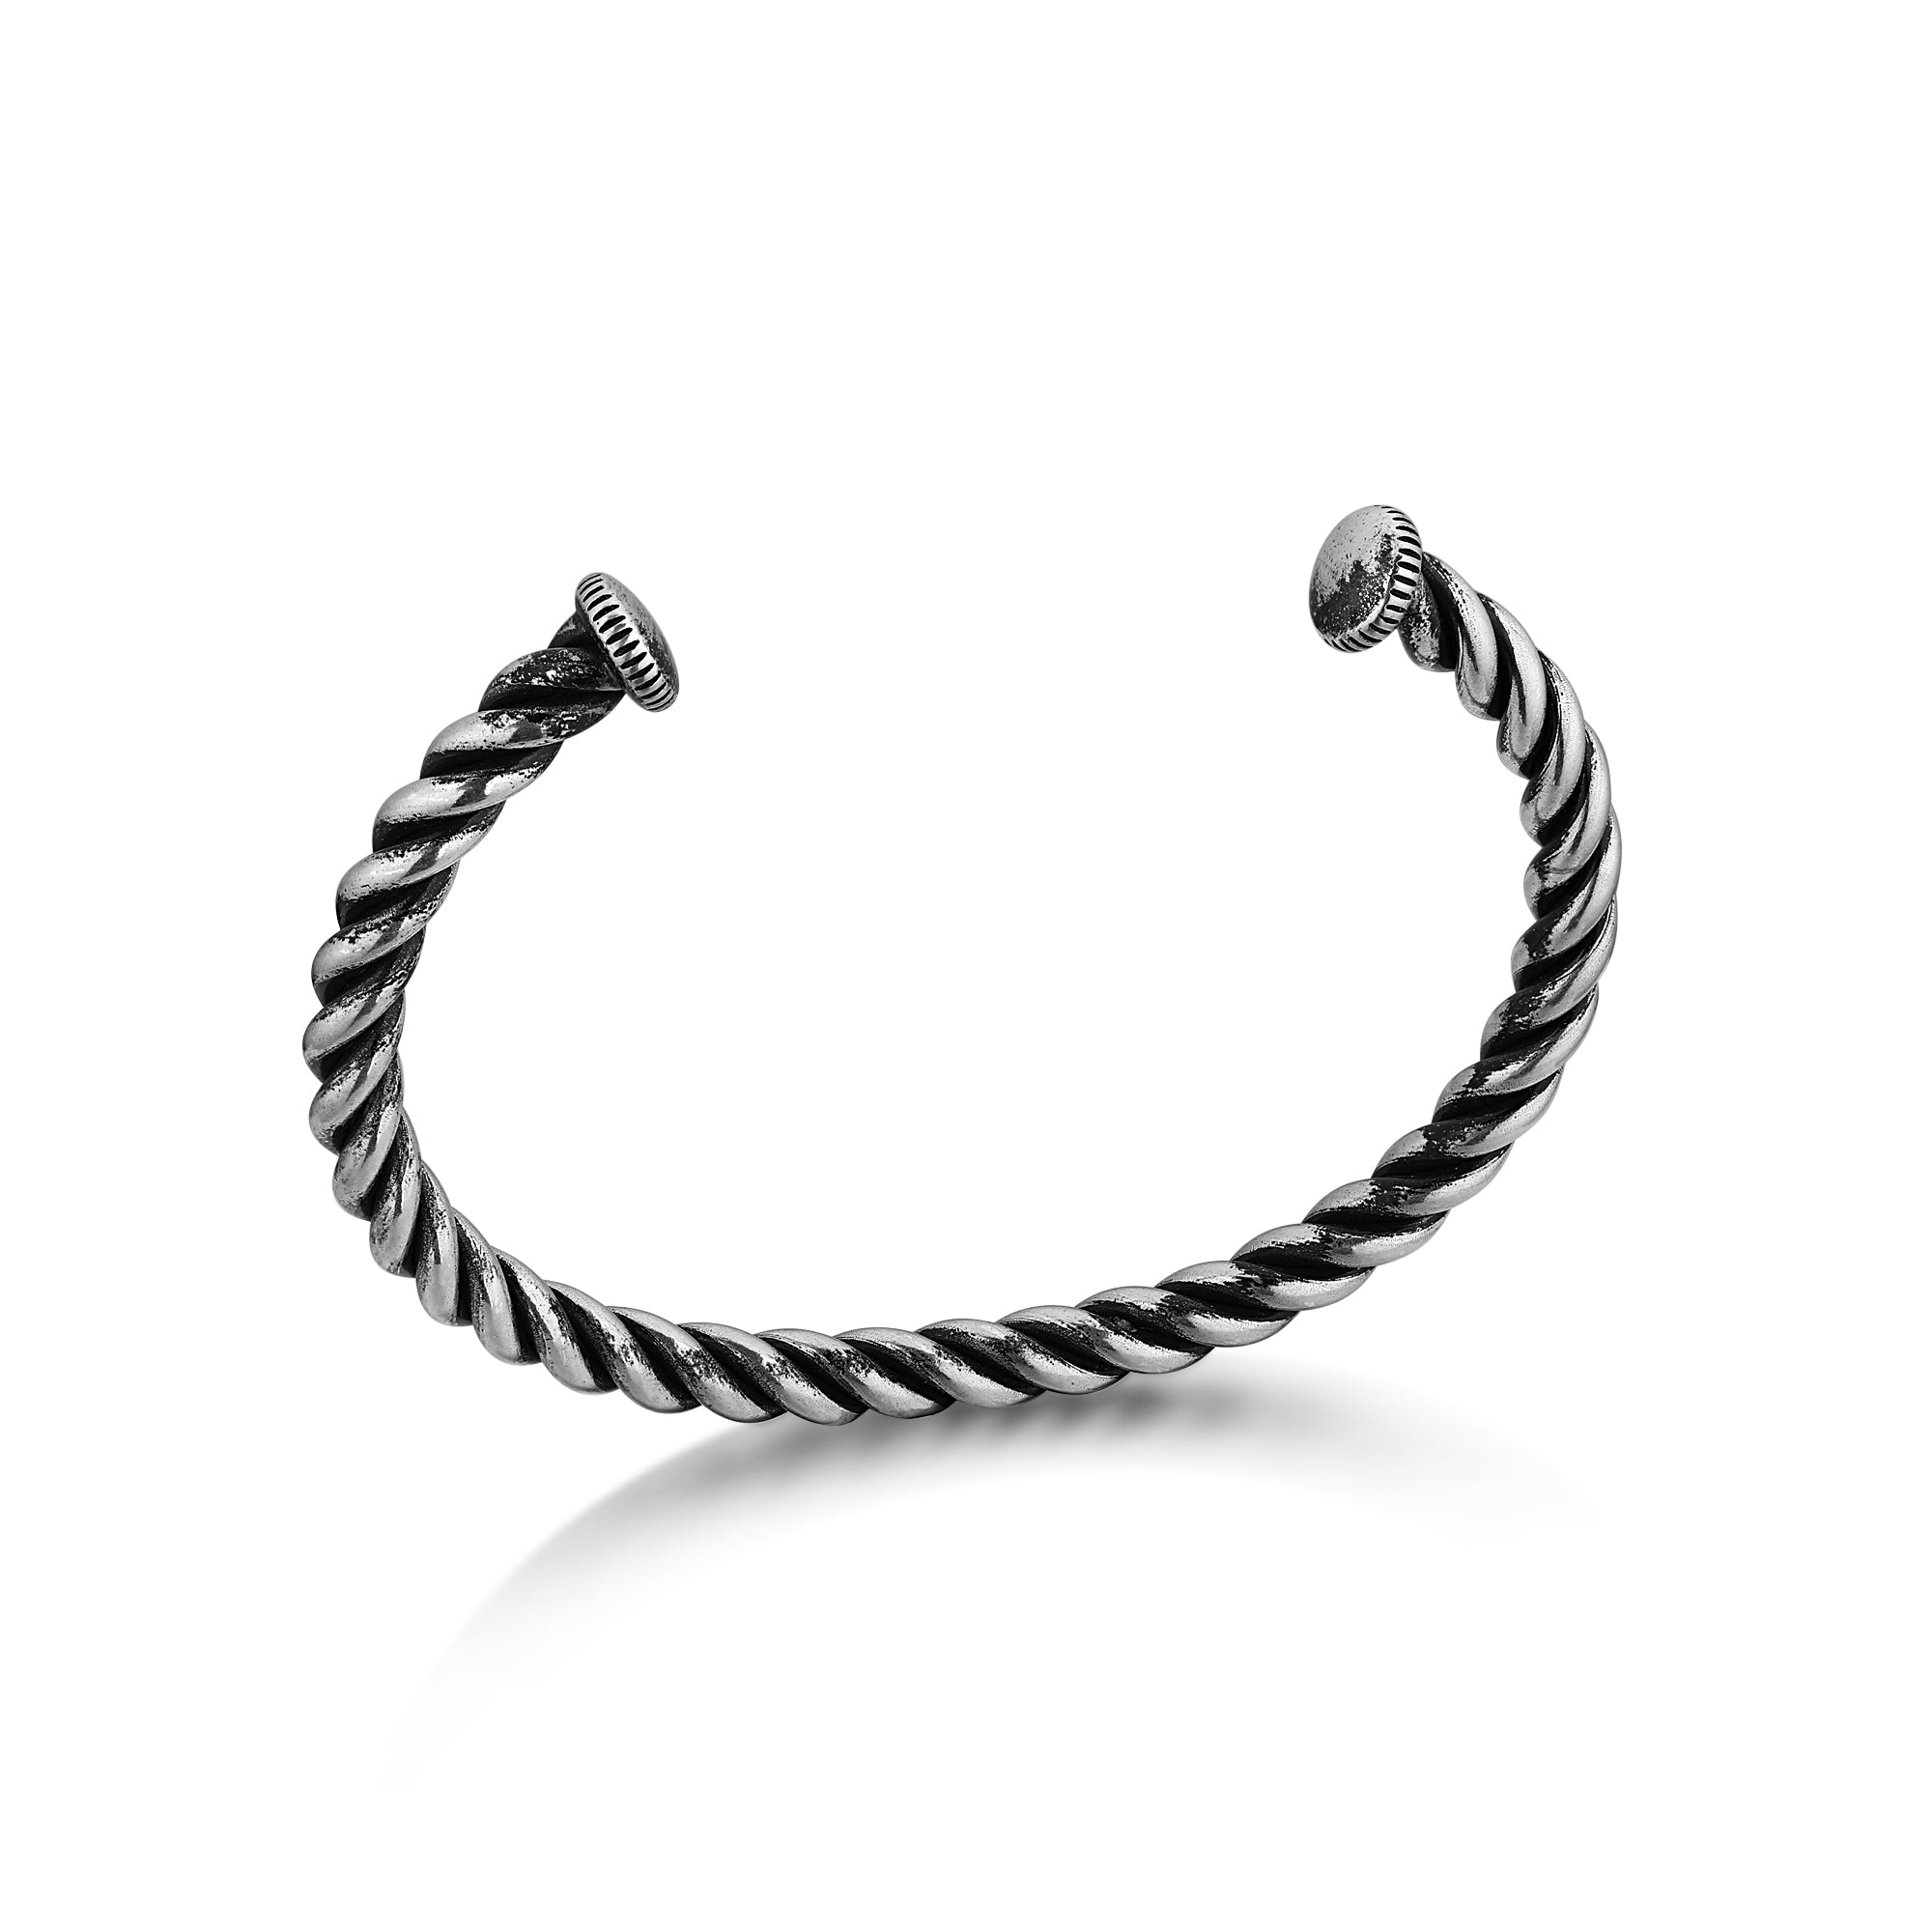 Twisted Rope Cuff Bracelet